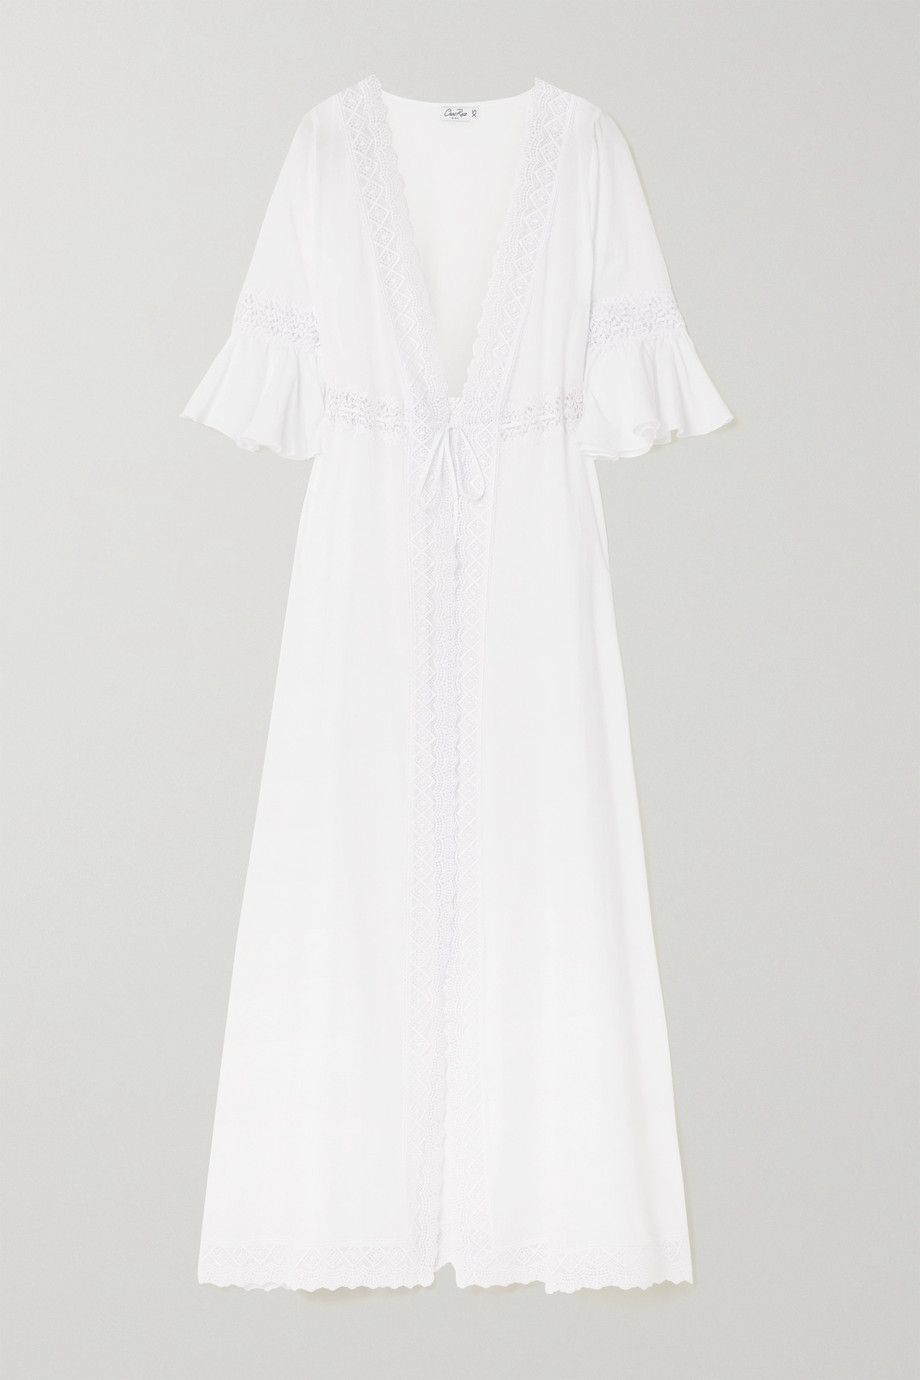 CHARO RUIZ Crocheted lace-trimmed cotton-blend voile robe